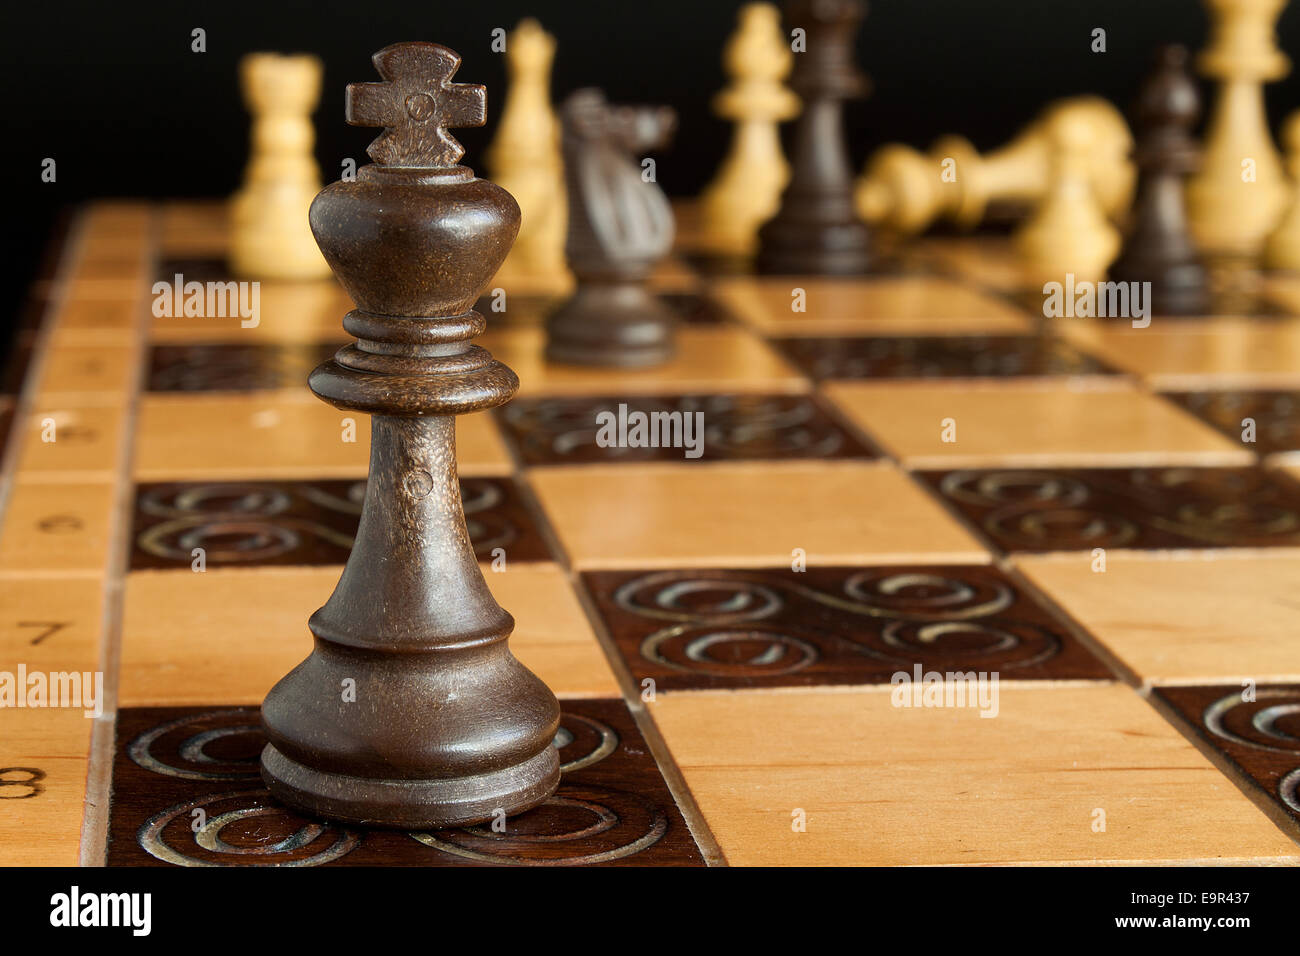 Photographed on a chess board - Stock Image